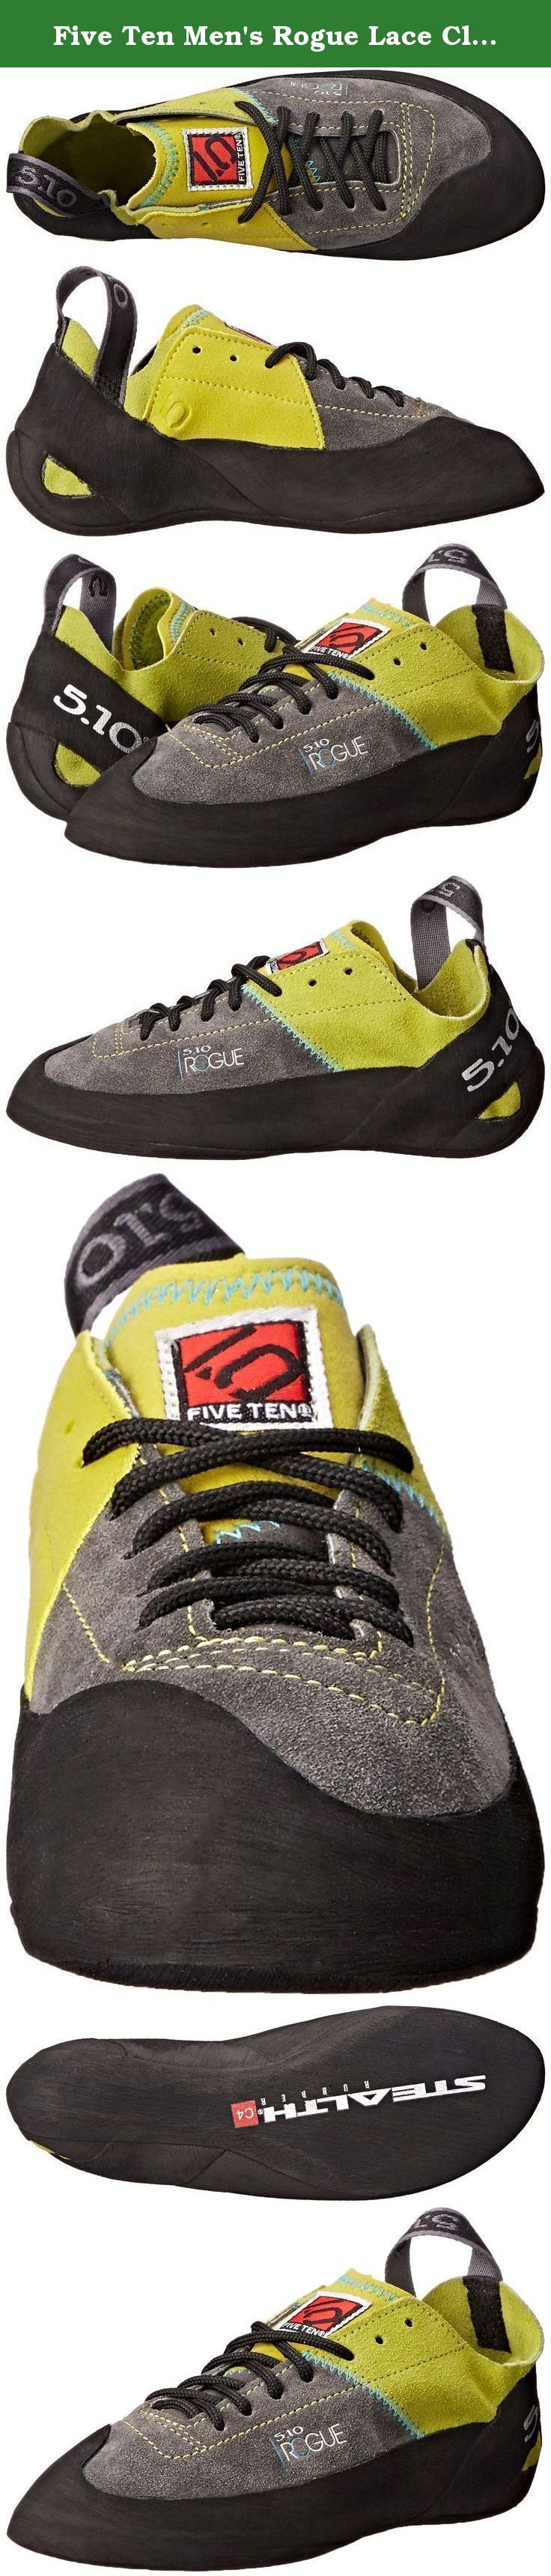 Five Ten Men's Rogue Lace Climbing Shoe,Green/Charcoal,11 M US. Five Ten, the Brand of the Brave, is a leader in performance, high-friction footwear. From downhill mountain bike racing to rock climbing, from wing suit flying to kayaking, Five Ten makes footwear for the world's most dangerous sports. The Redlands, California-based company has been producing cutting-edge designs and proprietary Stealth rubber soles for nearly 30 years. With the help of top national and international…